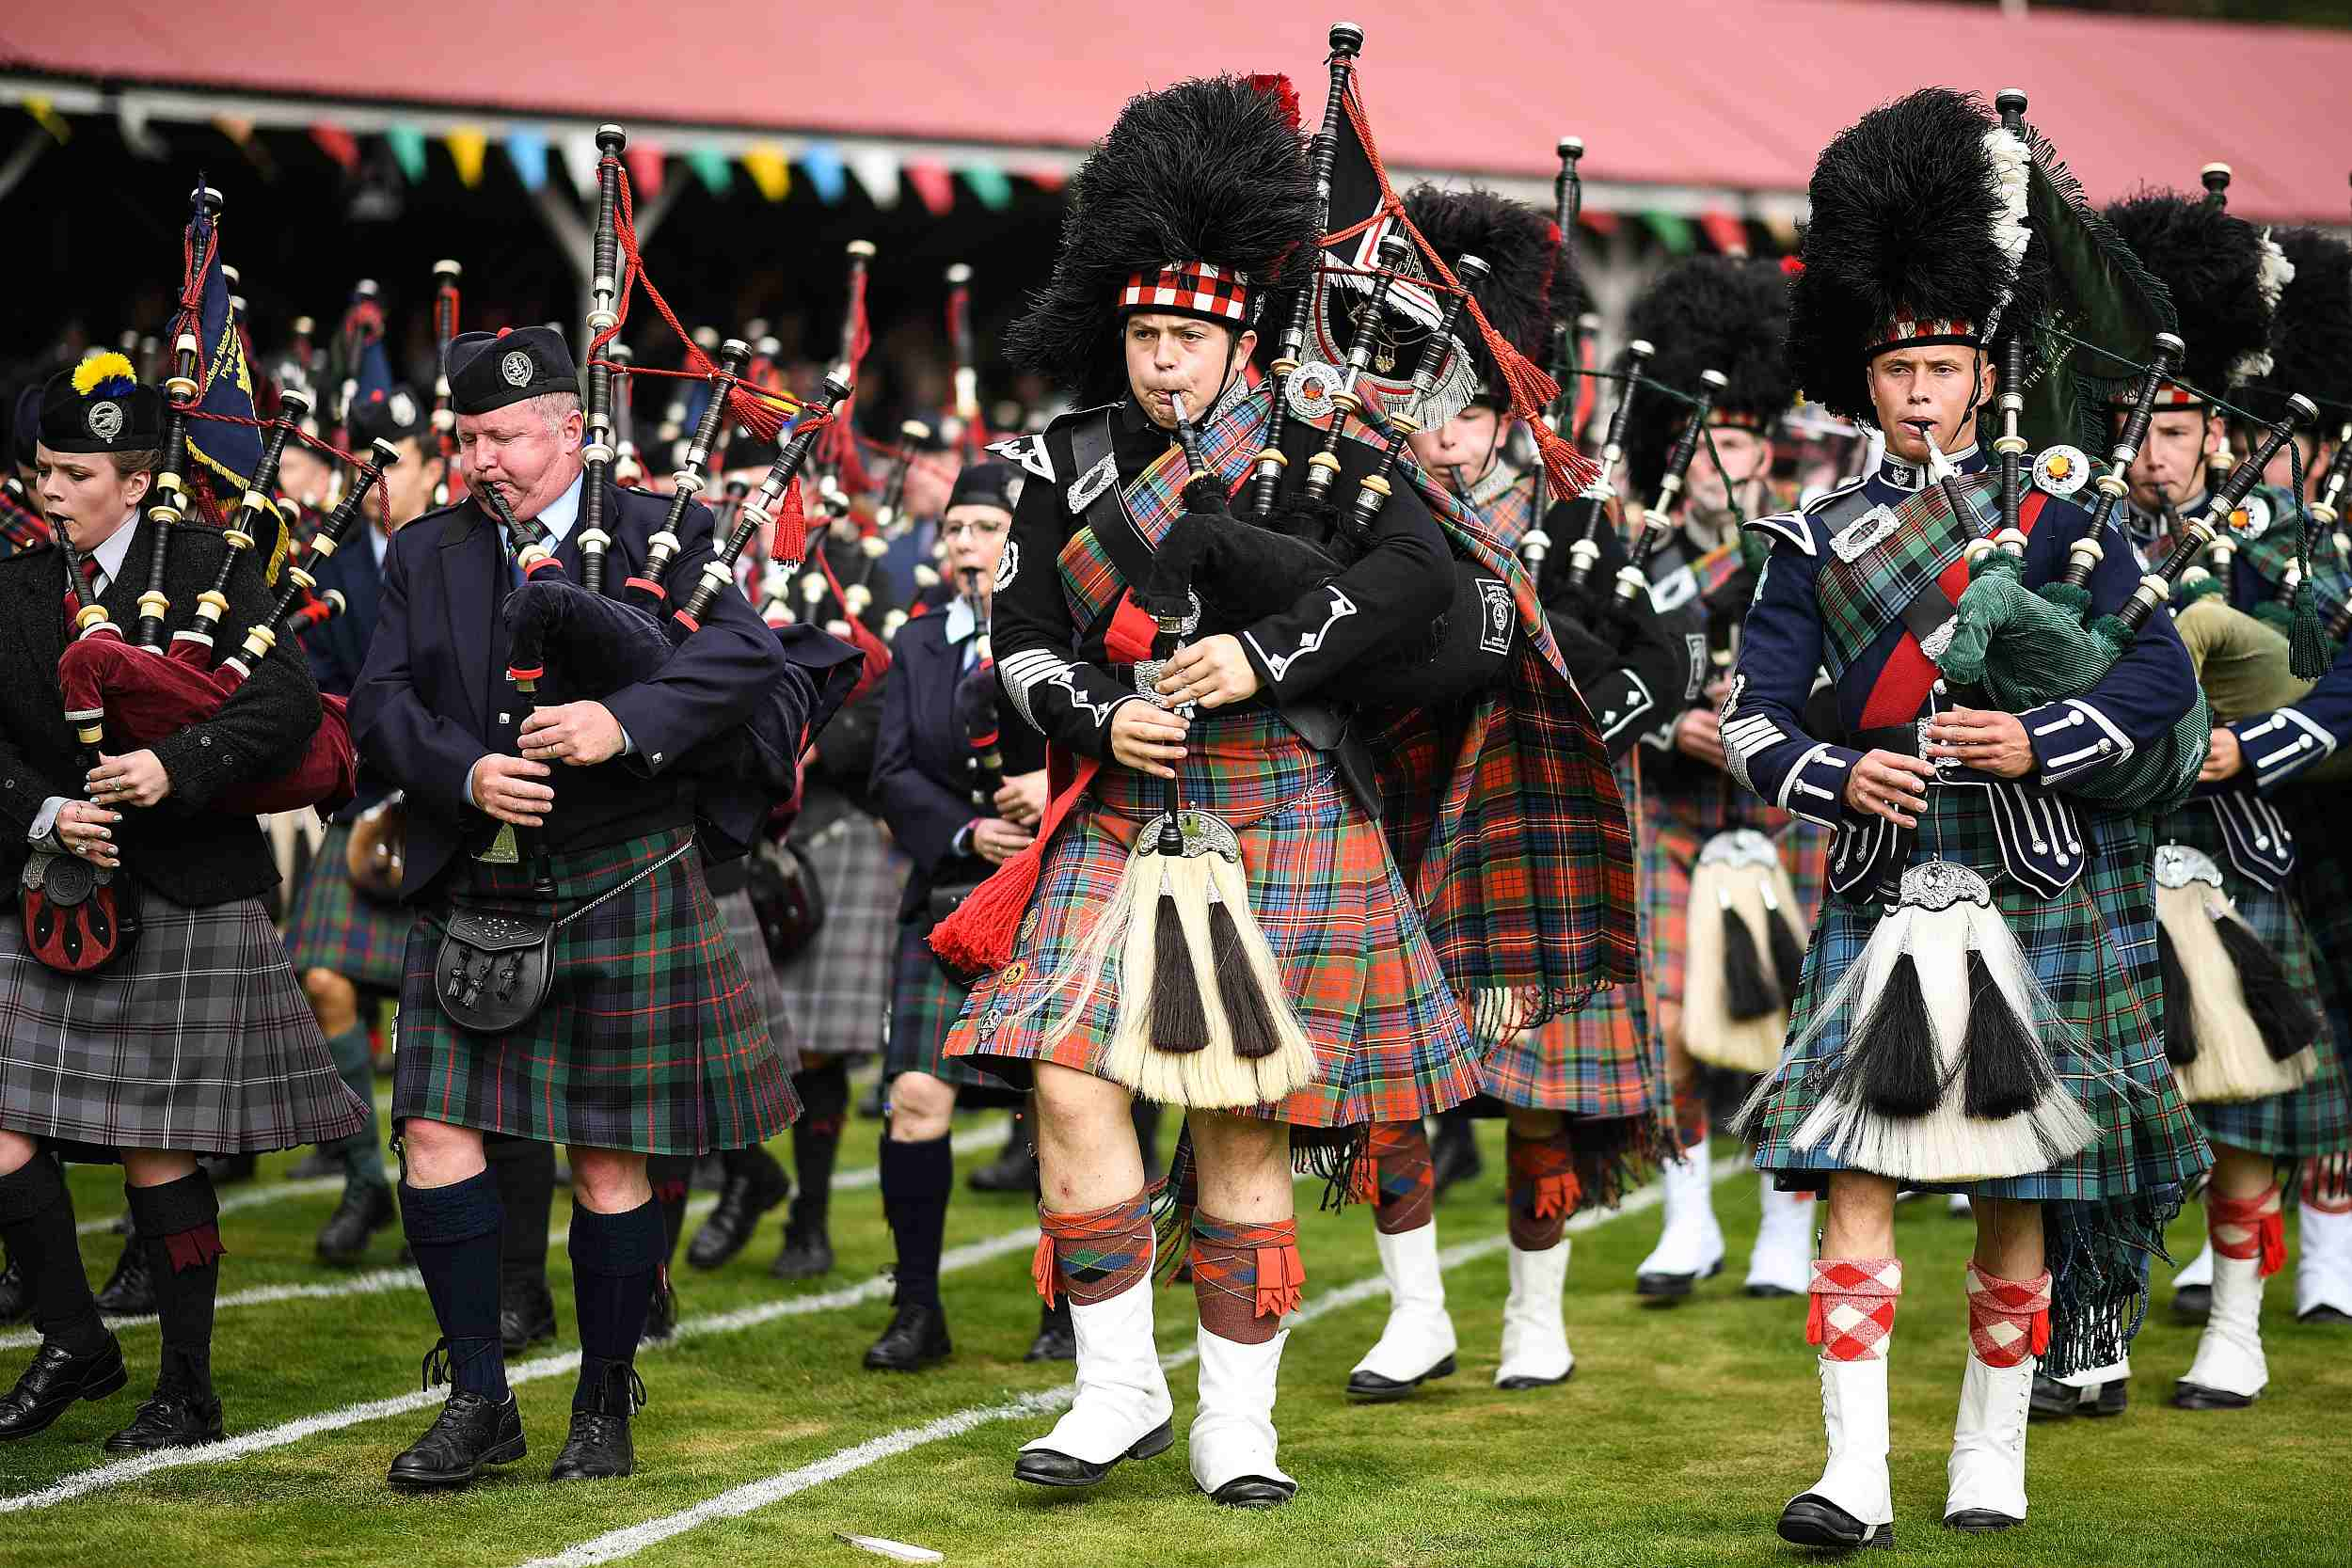 The Braemar Gathering commences in Scotland